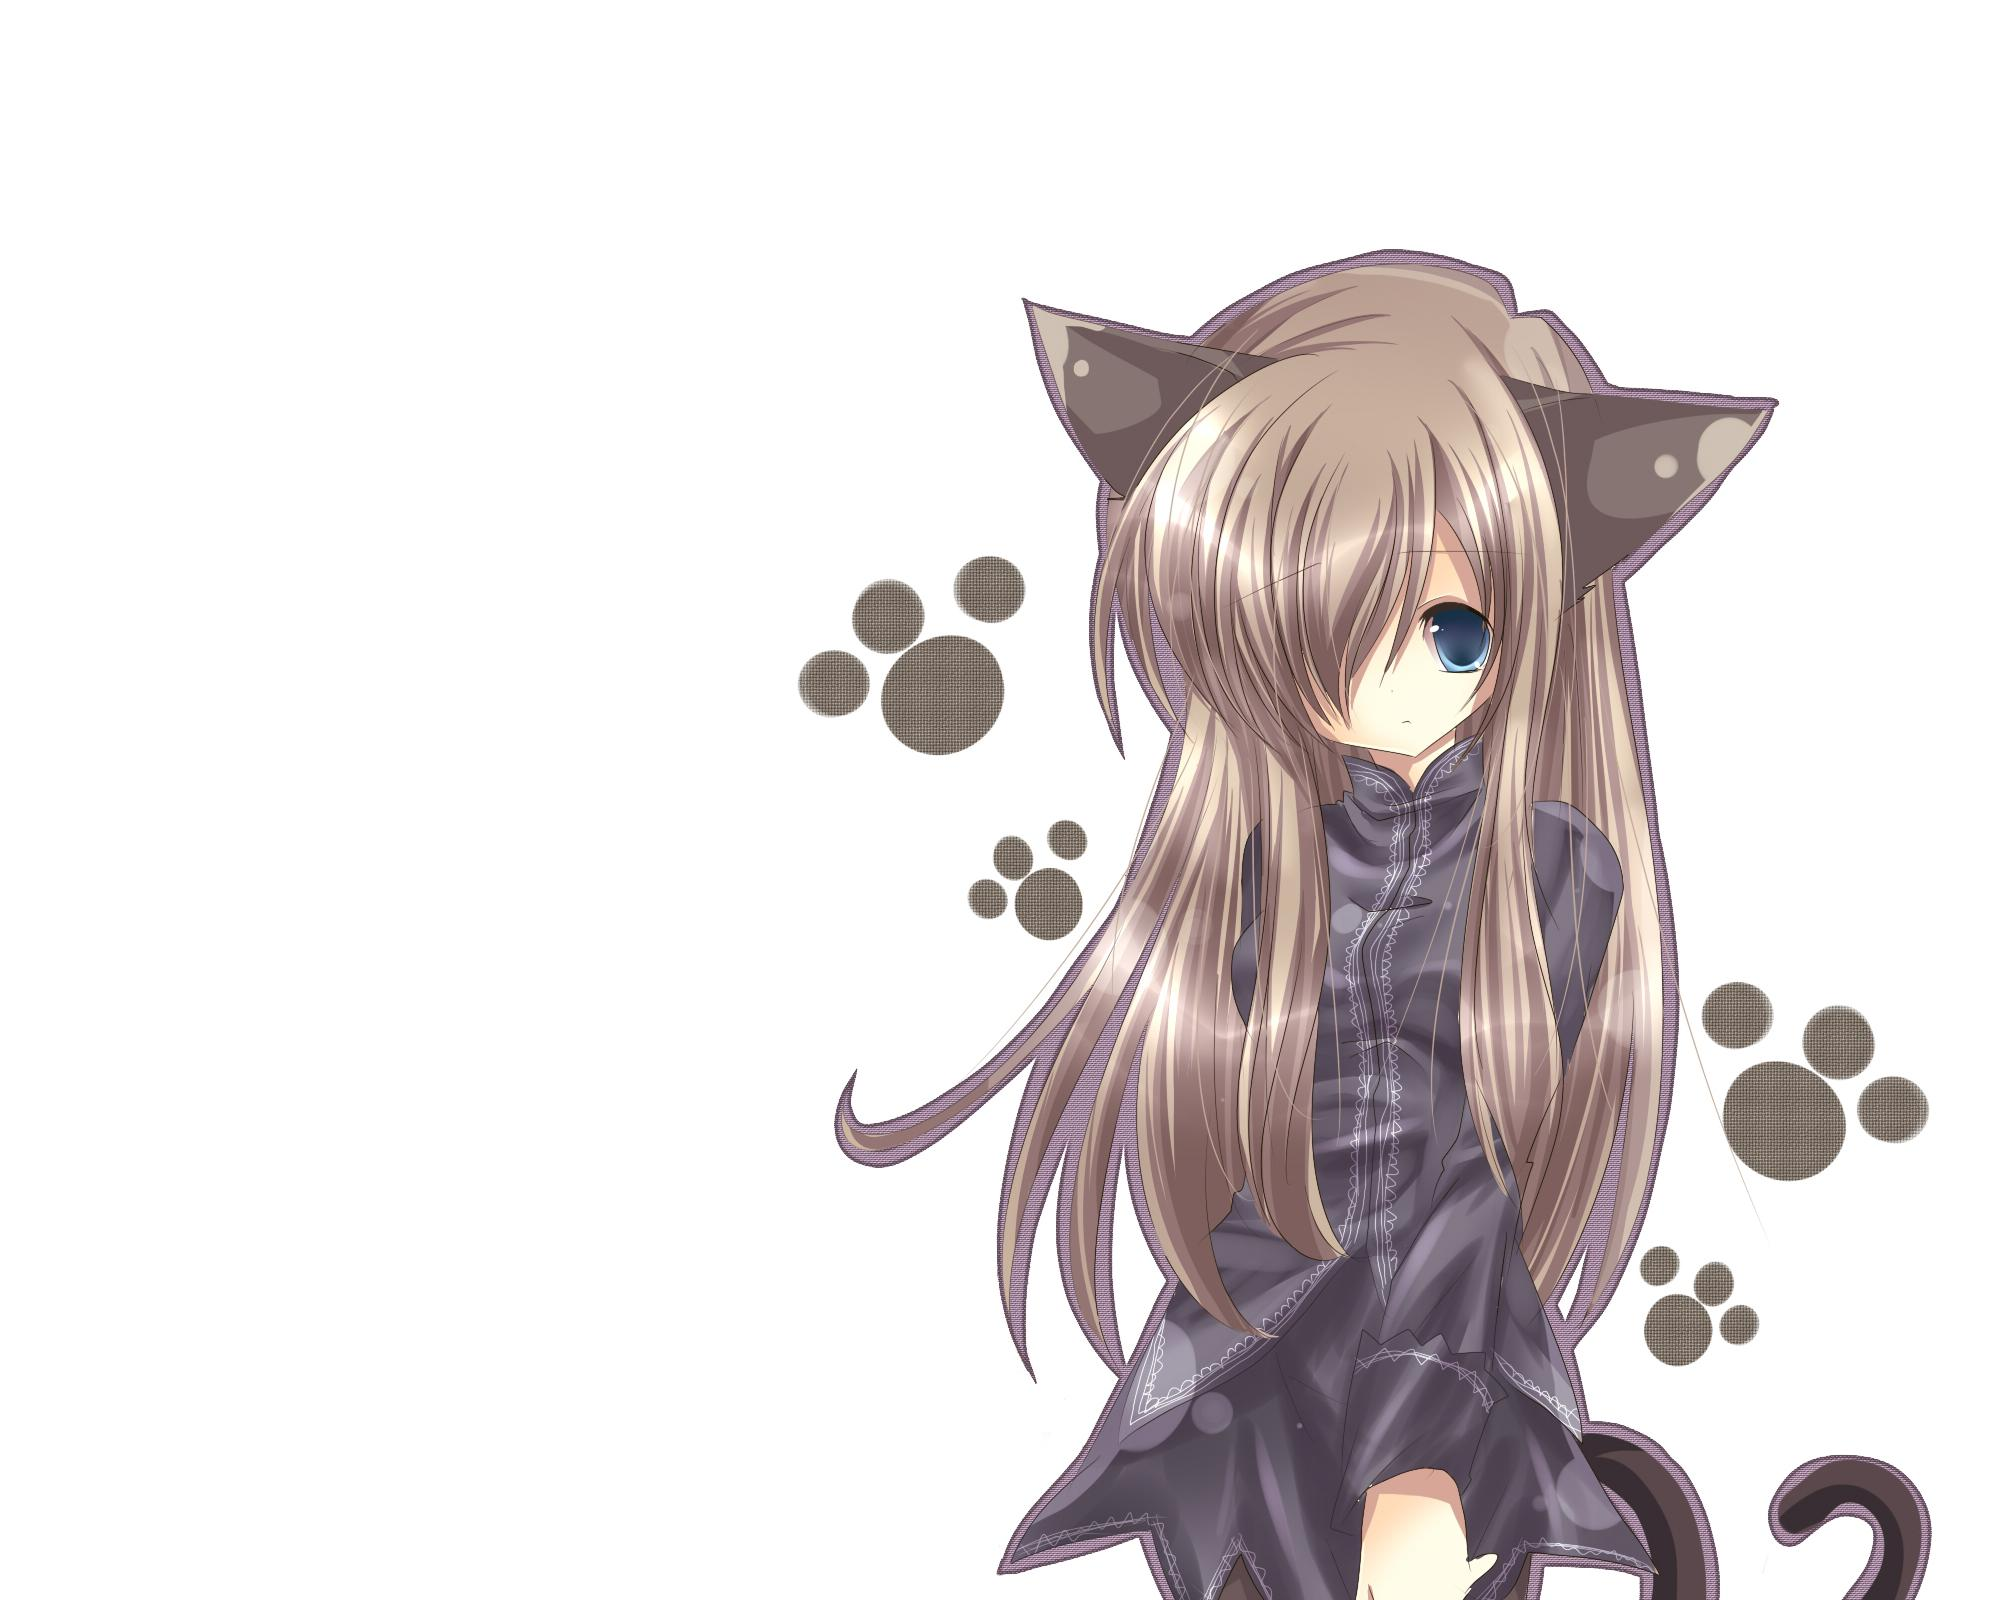 Neko Girl Wallpaper Pack 2 Randomness Thing 2000x1600